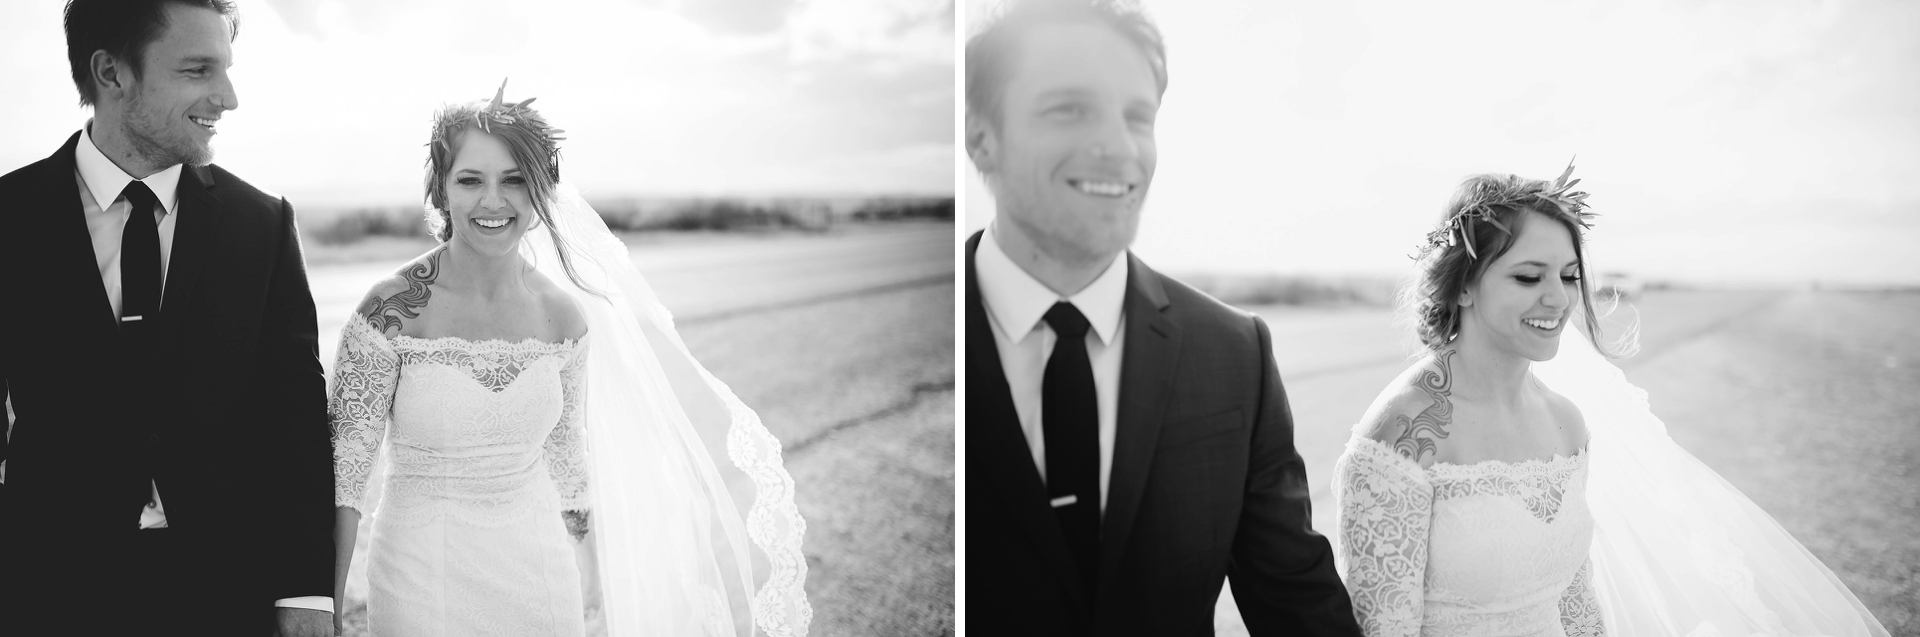 wedding marfa portraits